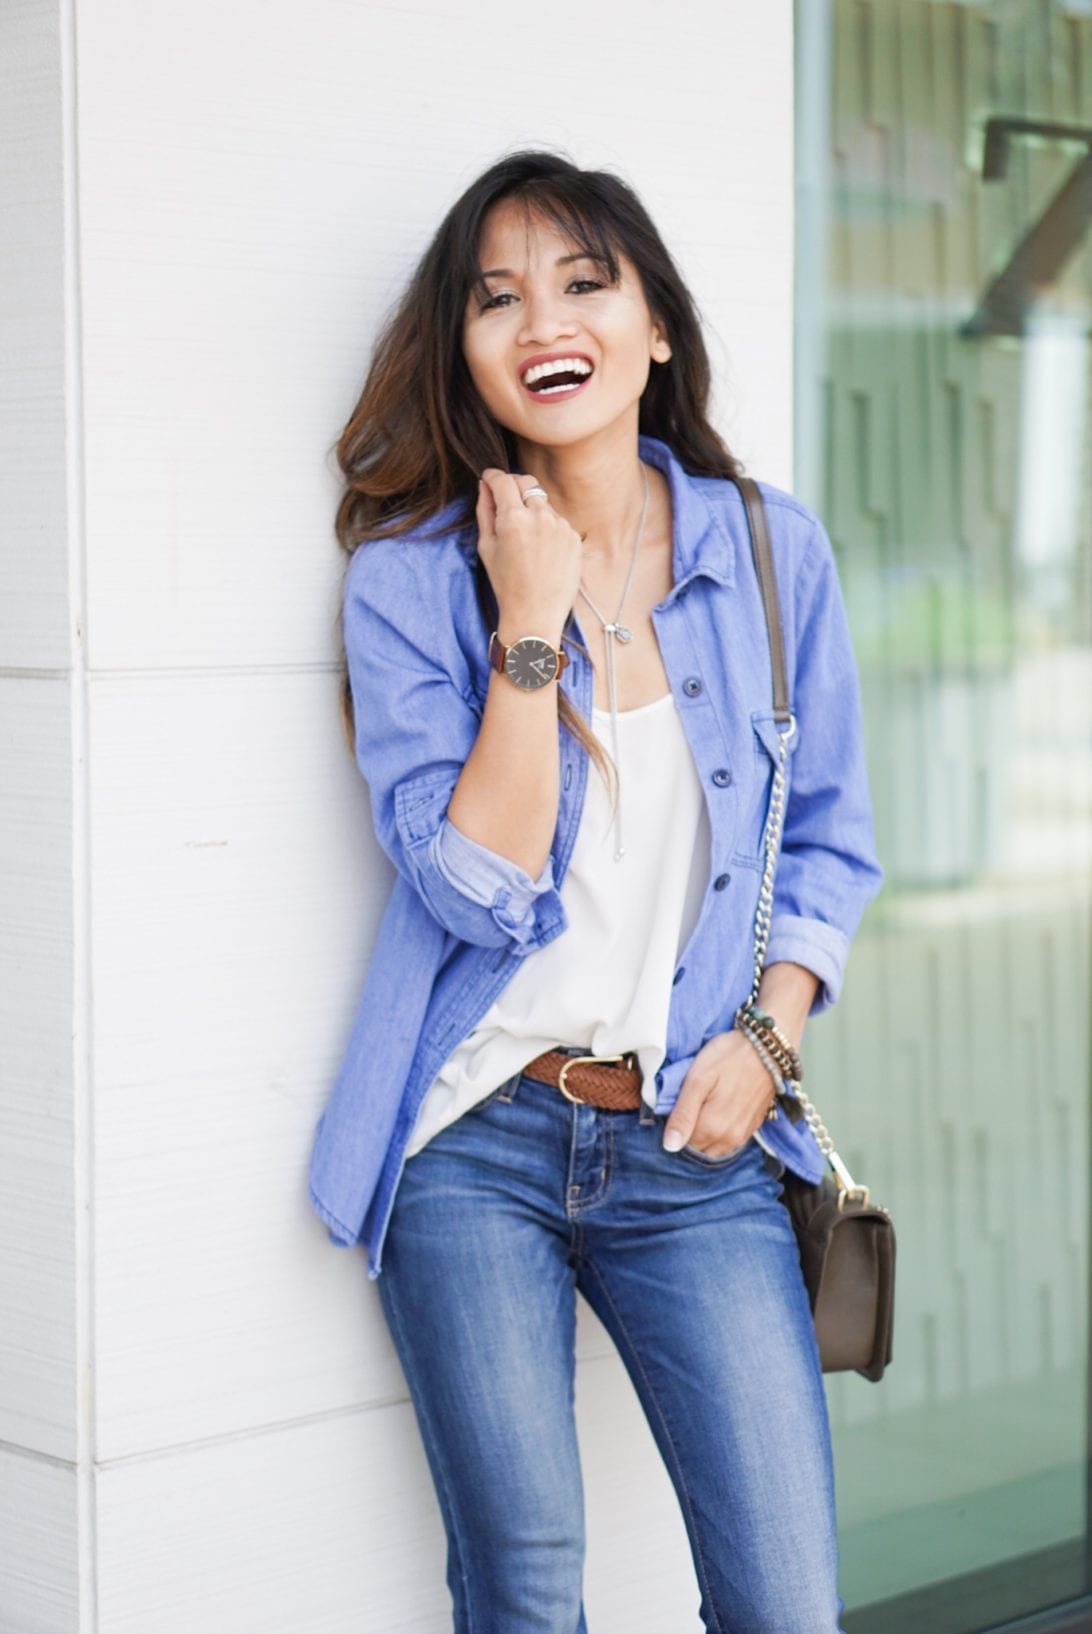 daniel wellington watch, chambray top, blue jeans